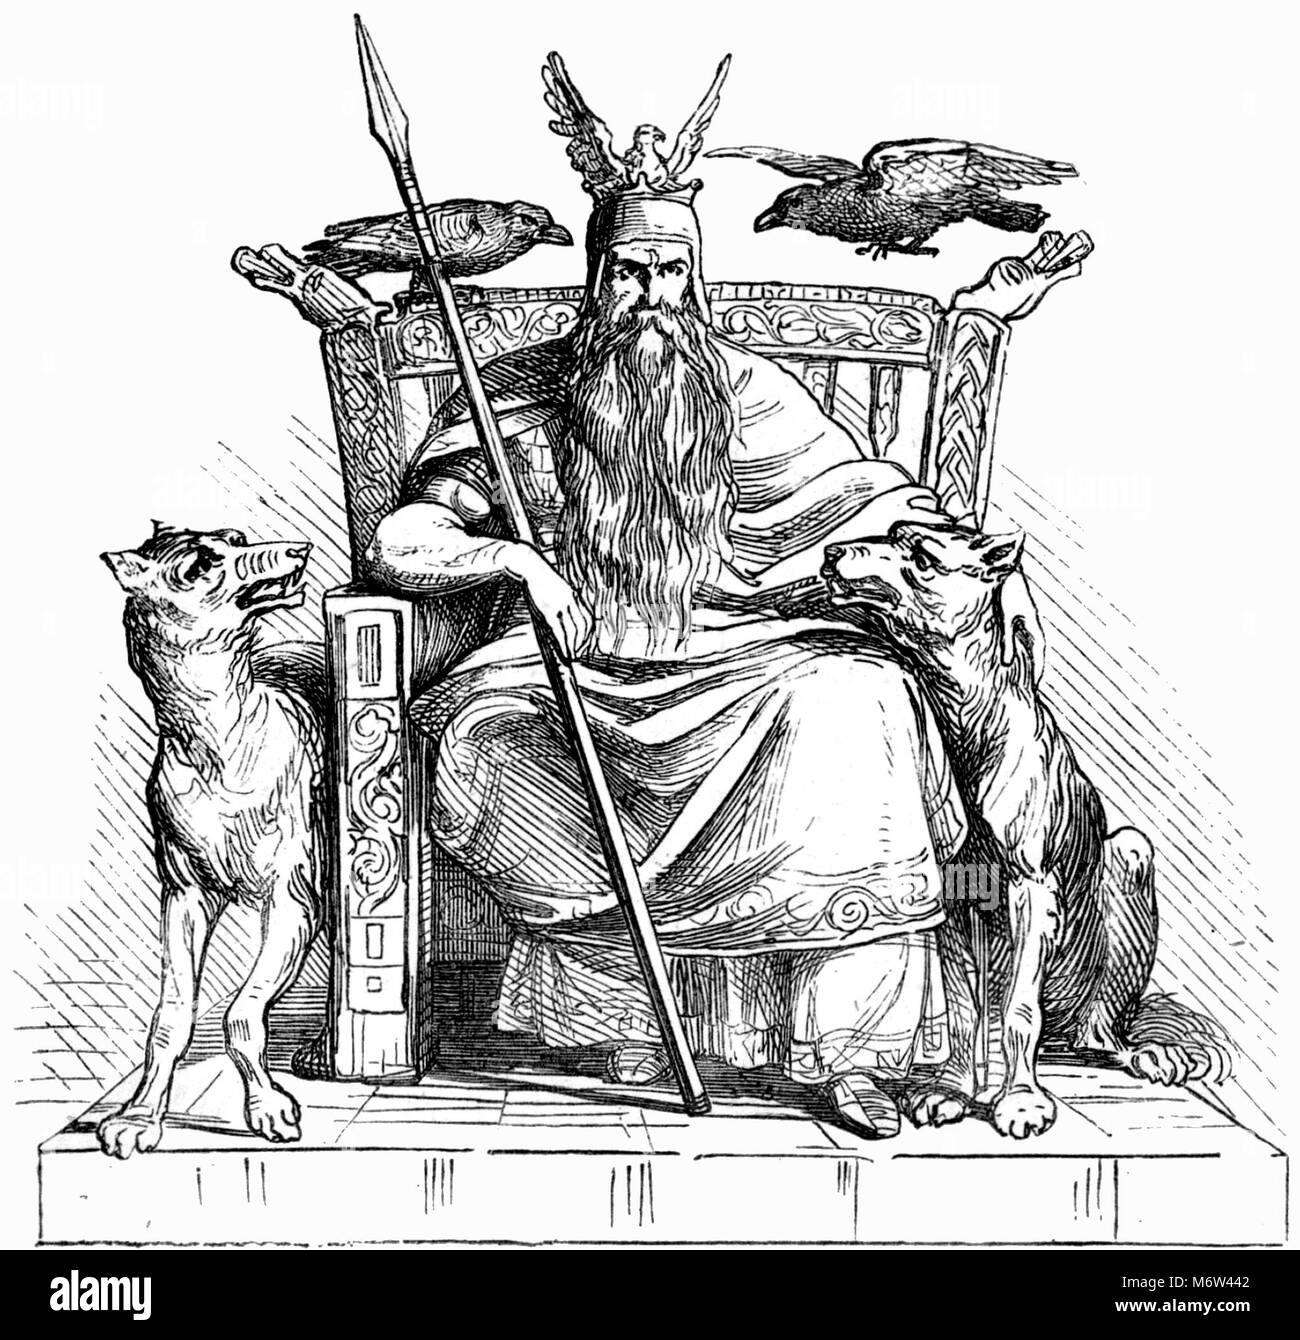 The Norse god Odin with his two wolfs, Geri and Freki, and his two ravens, Huginn and Muninn, and holding his spear - Stock Image